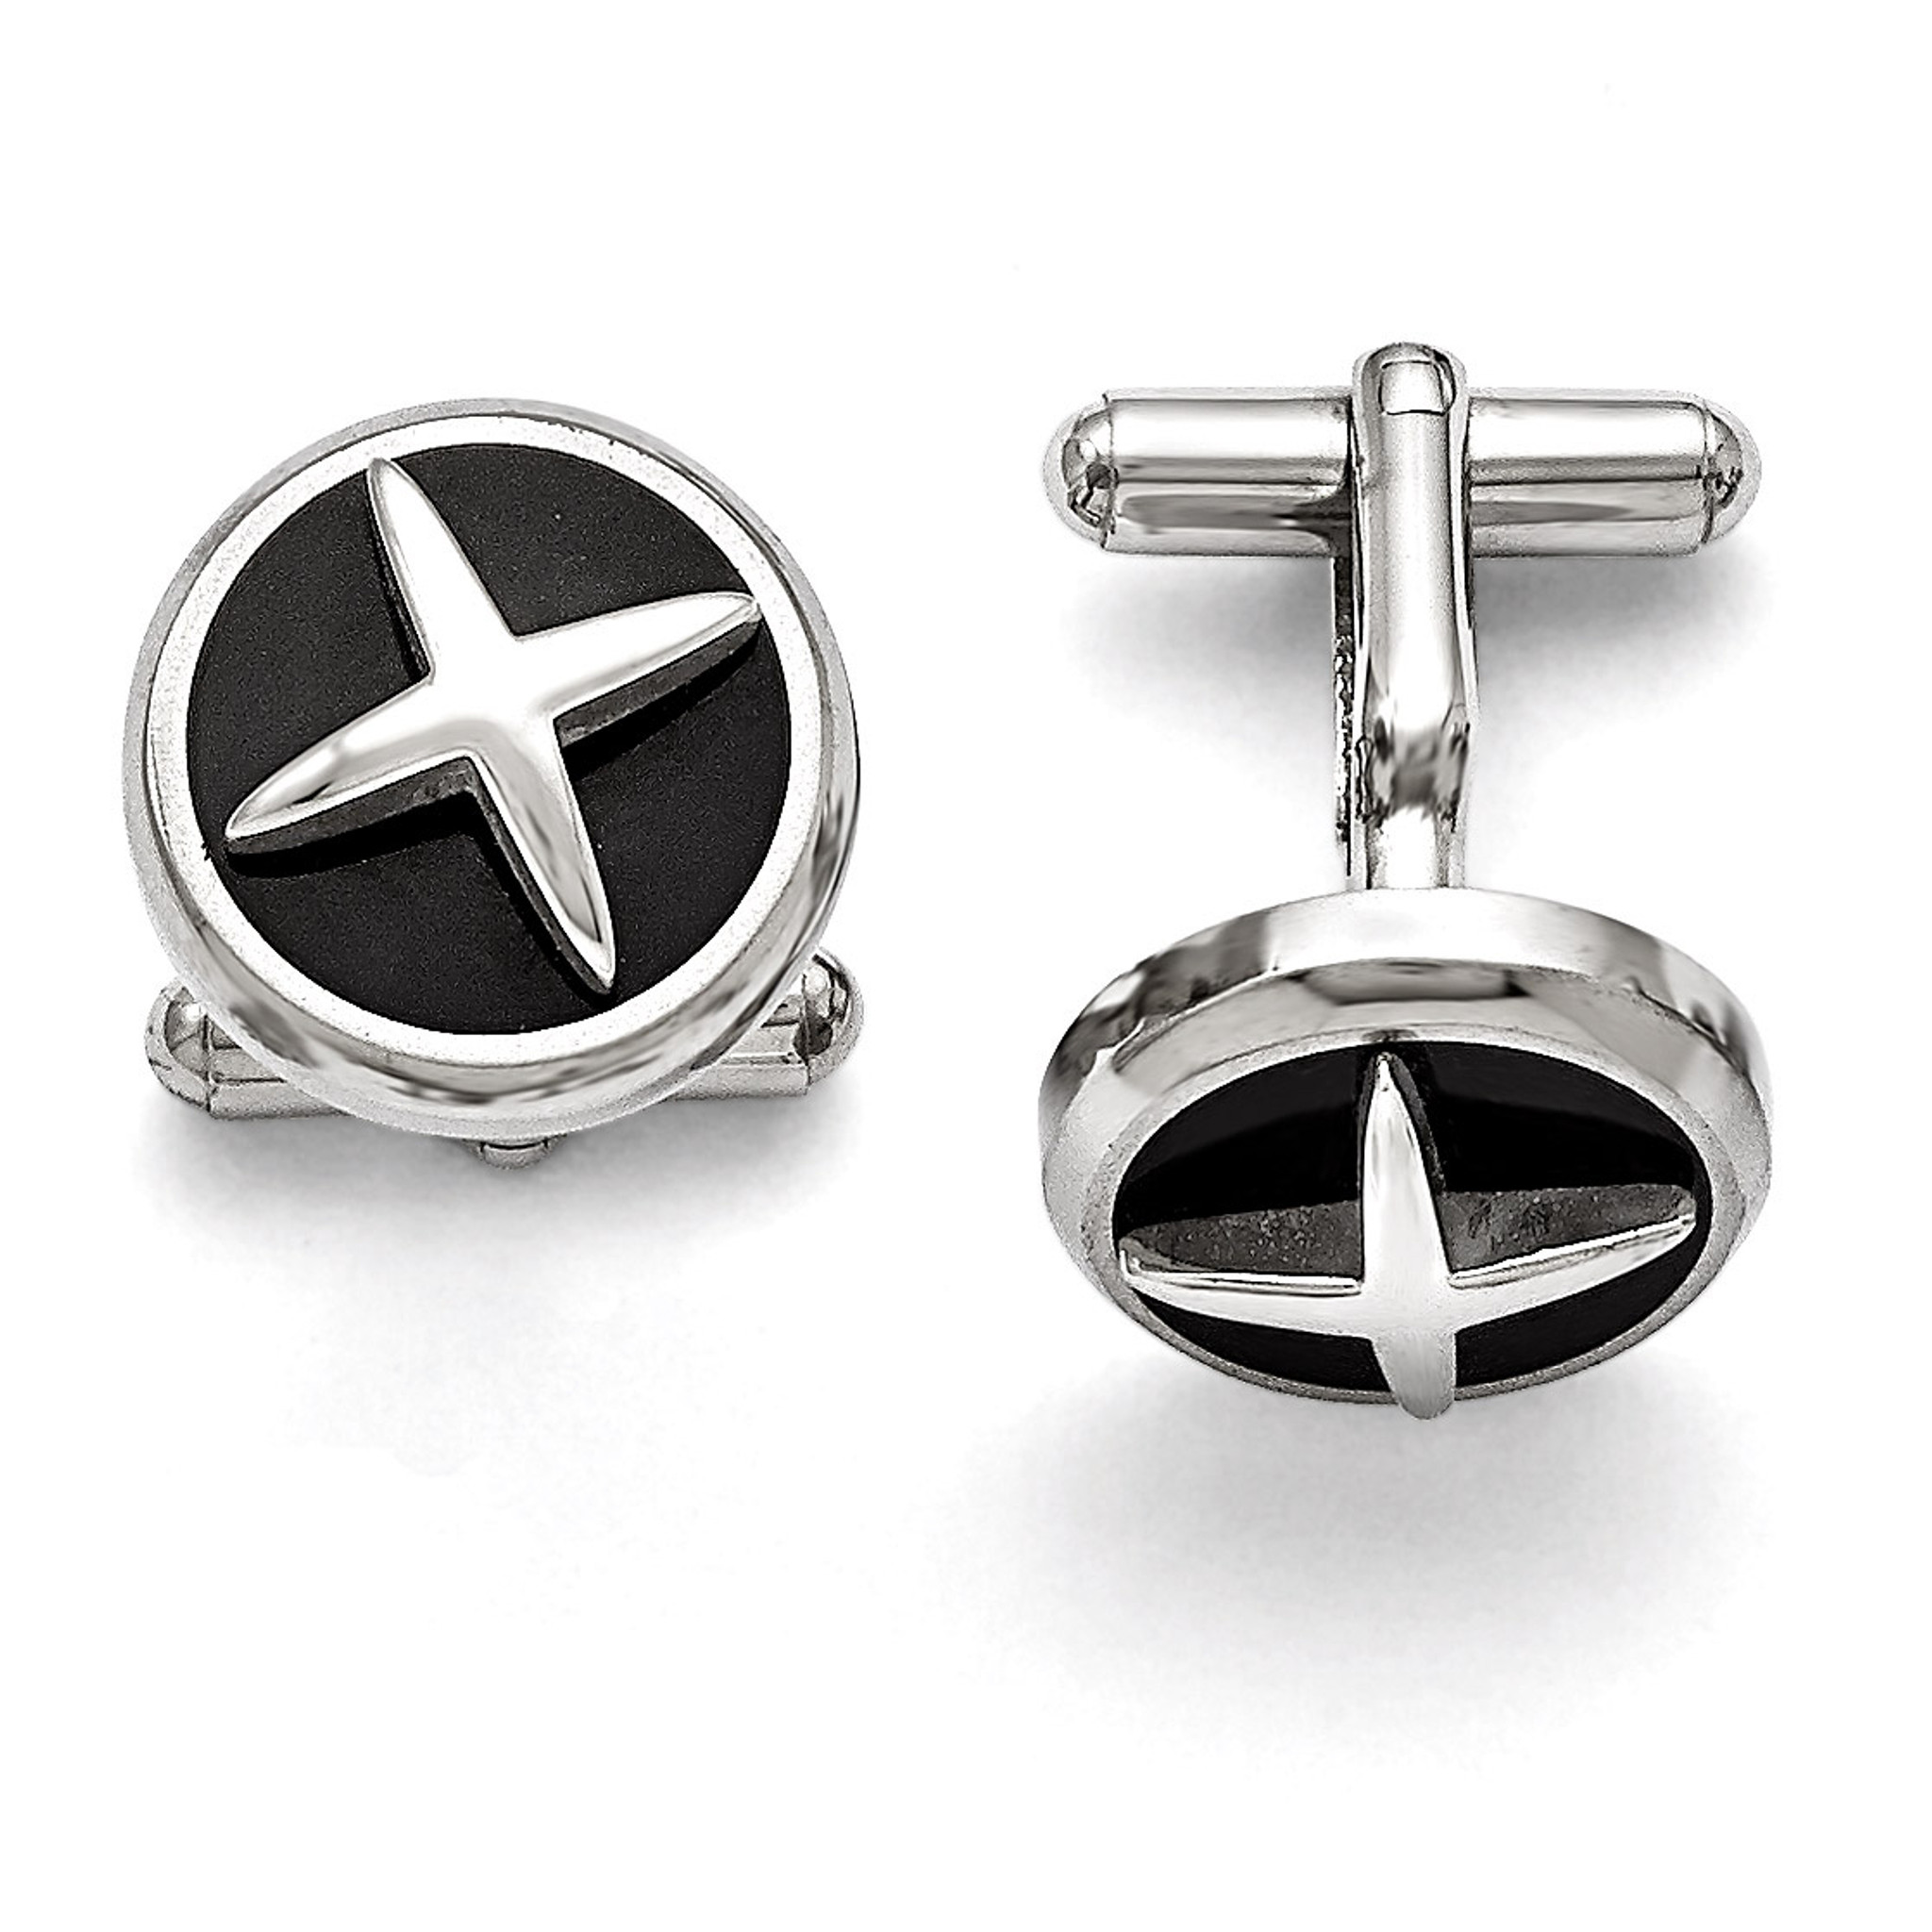 18mm x 18mm Stainless Steel Polished Enameled X Cuff Links